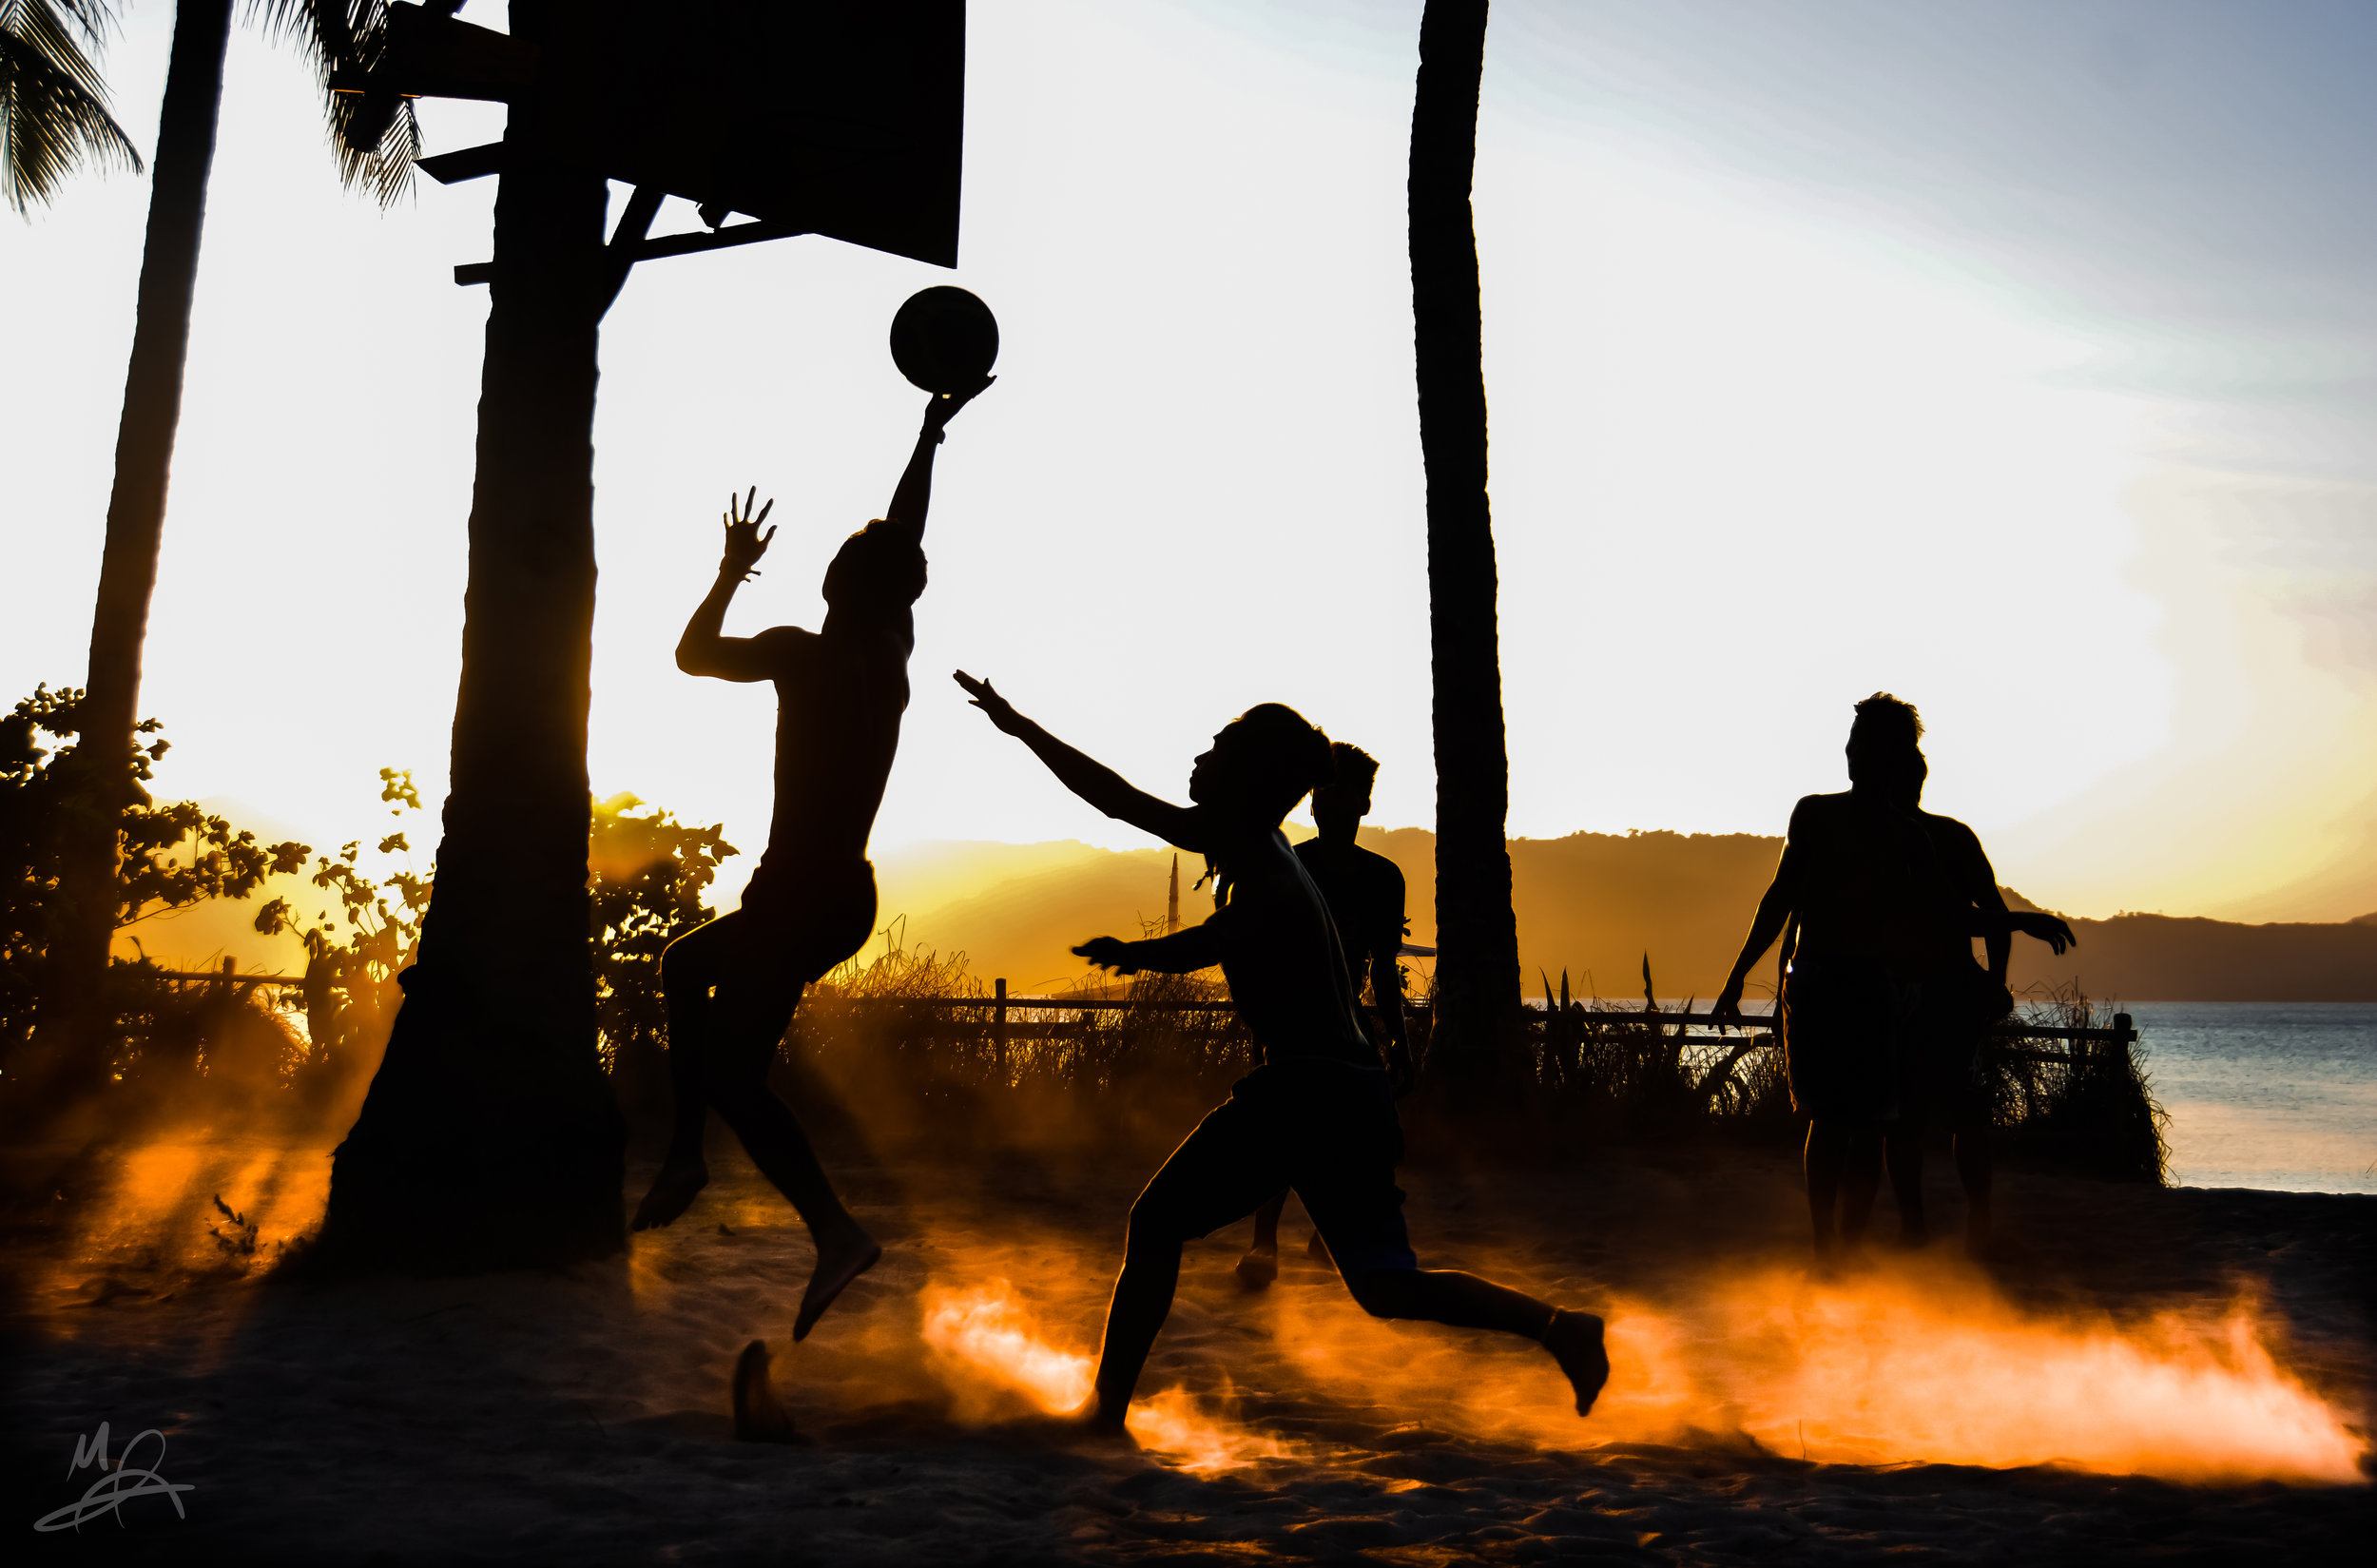 Silhouettes playing sport 1/2